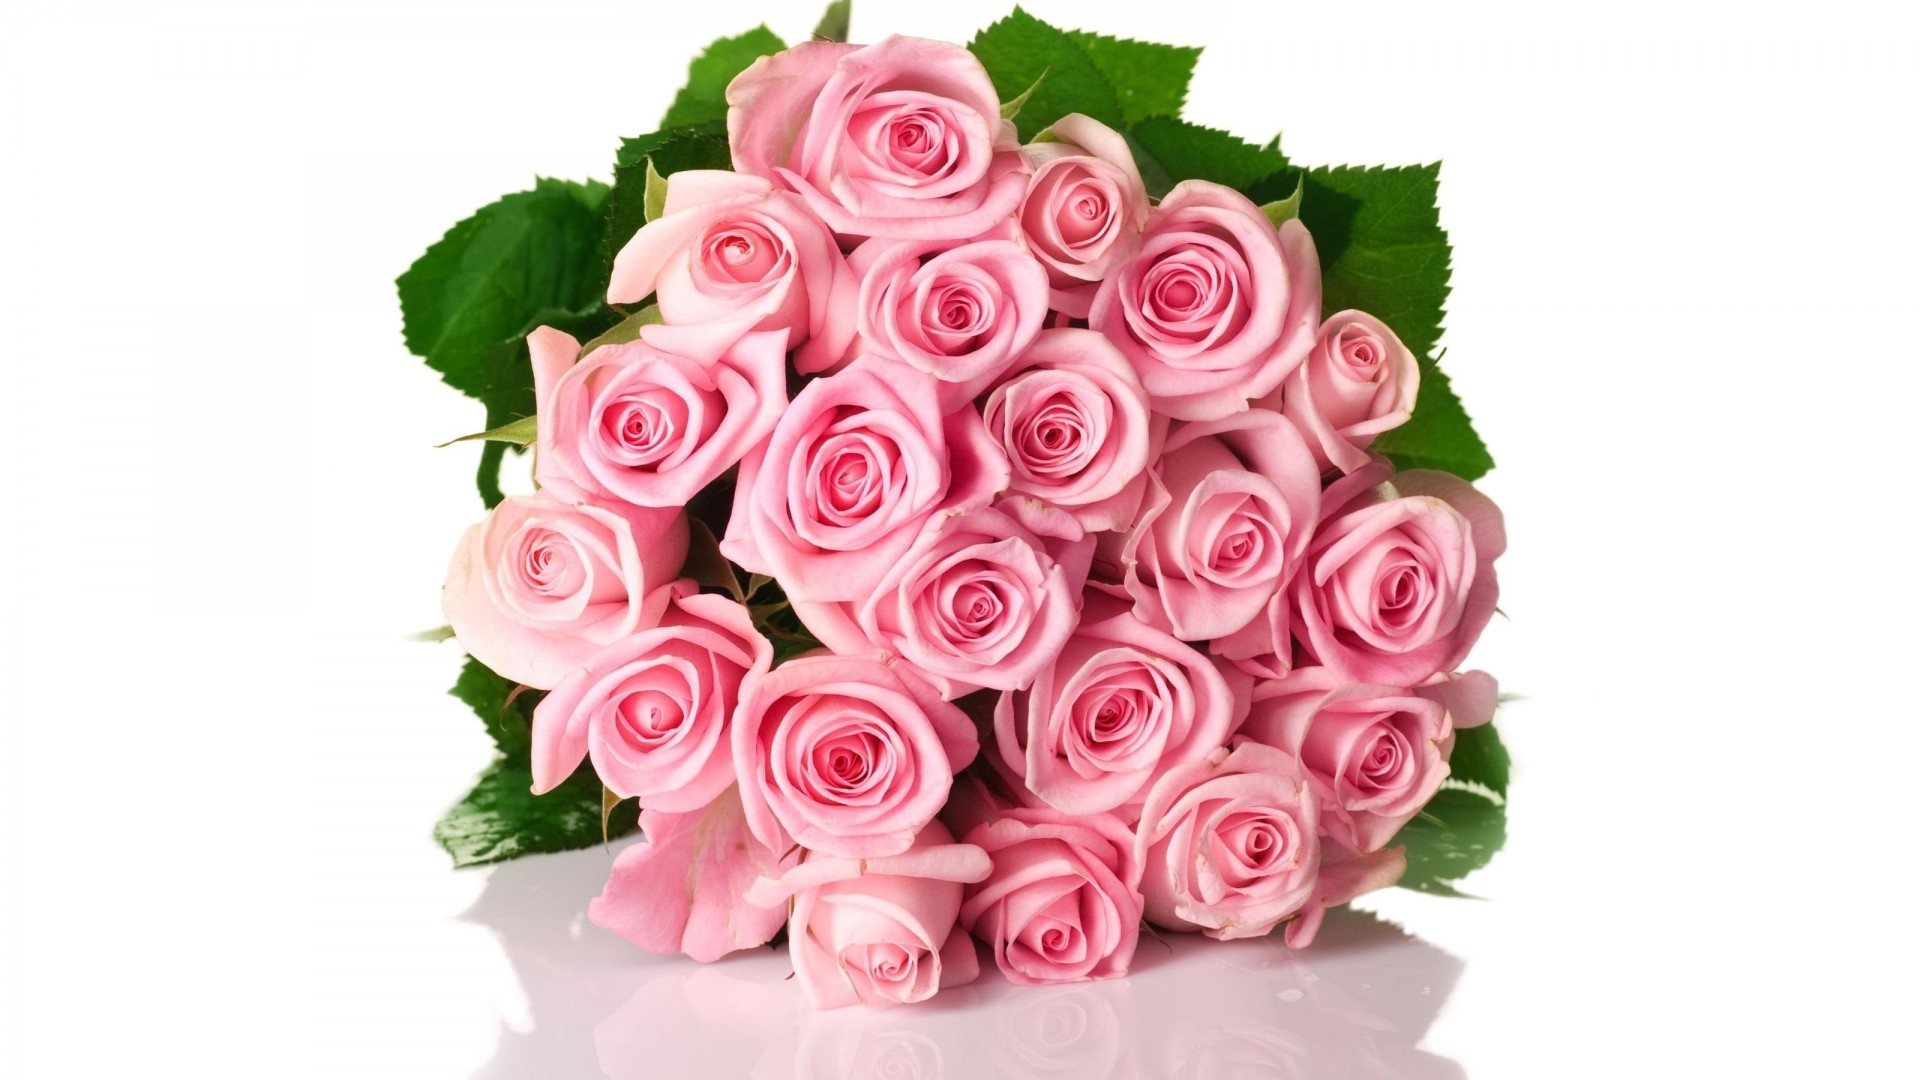 Pink Roses Bouquet - Wallpaper, High Definition, High Quality ...